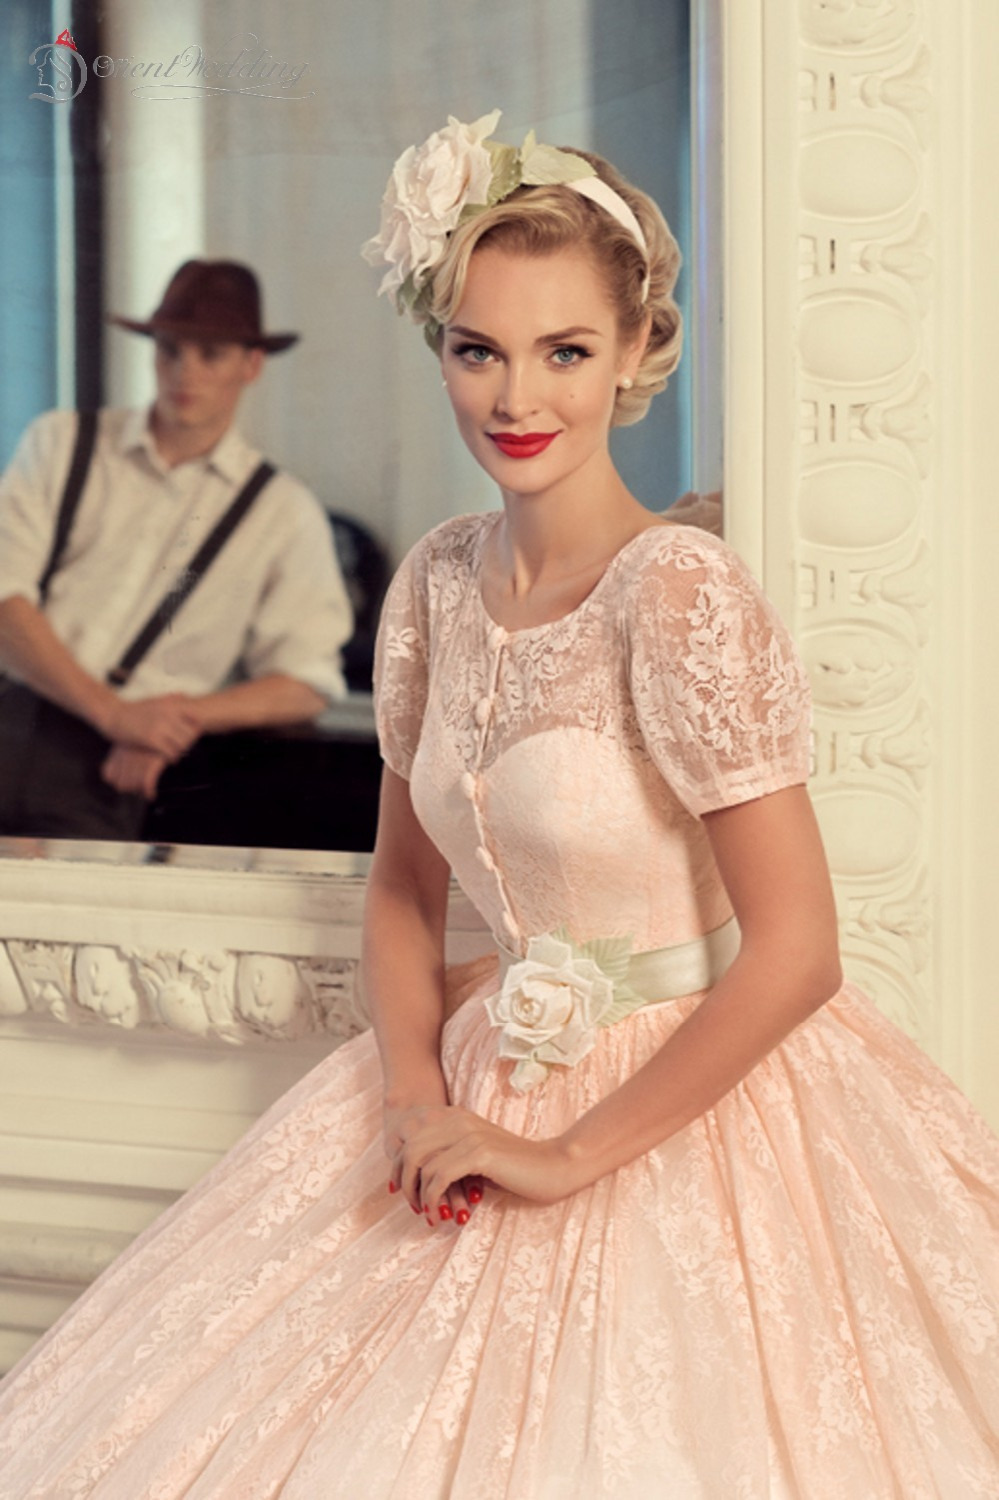 Blush Pink Wedding Dresses Vintage Dress 2017 Vestido De Novia Fotos Reales Peach With Short Sleeves In From